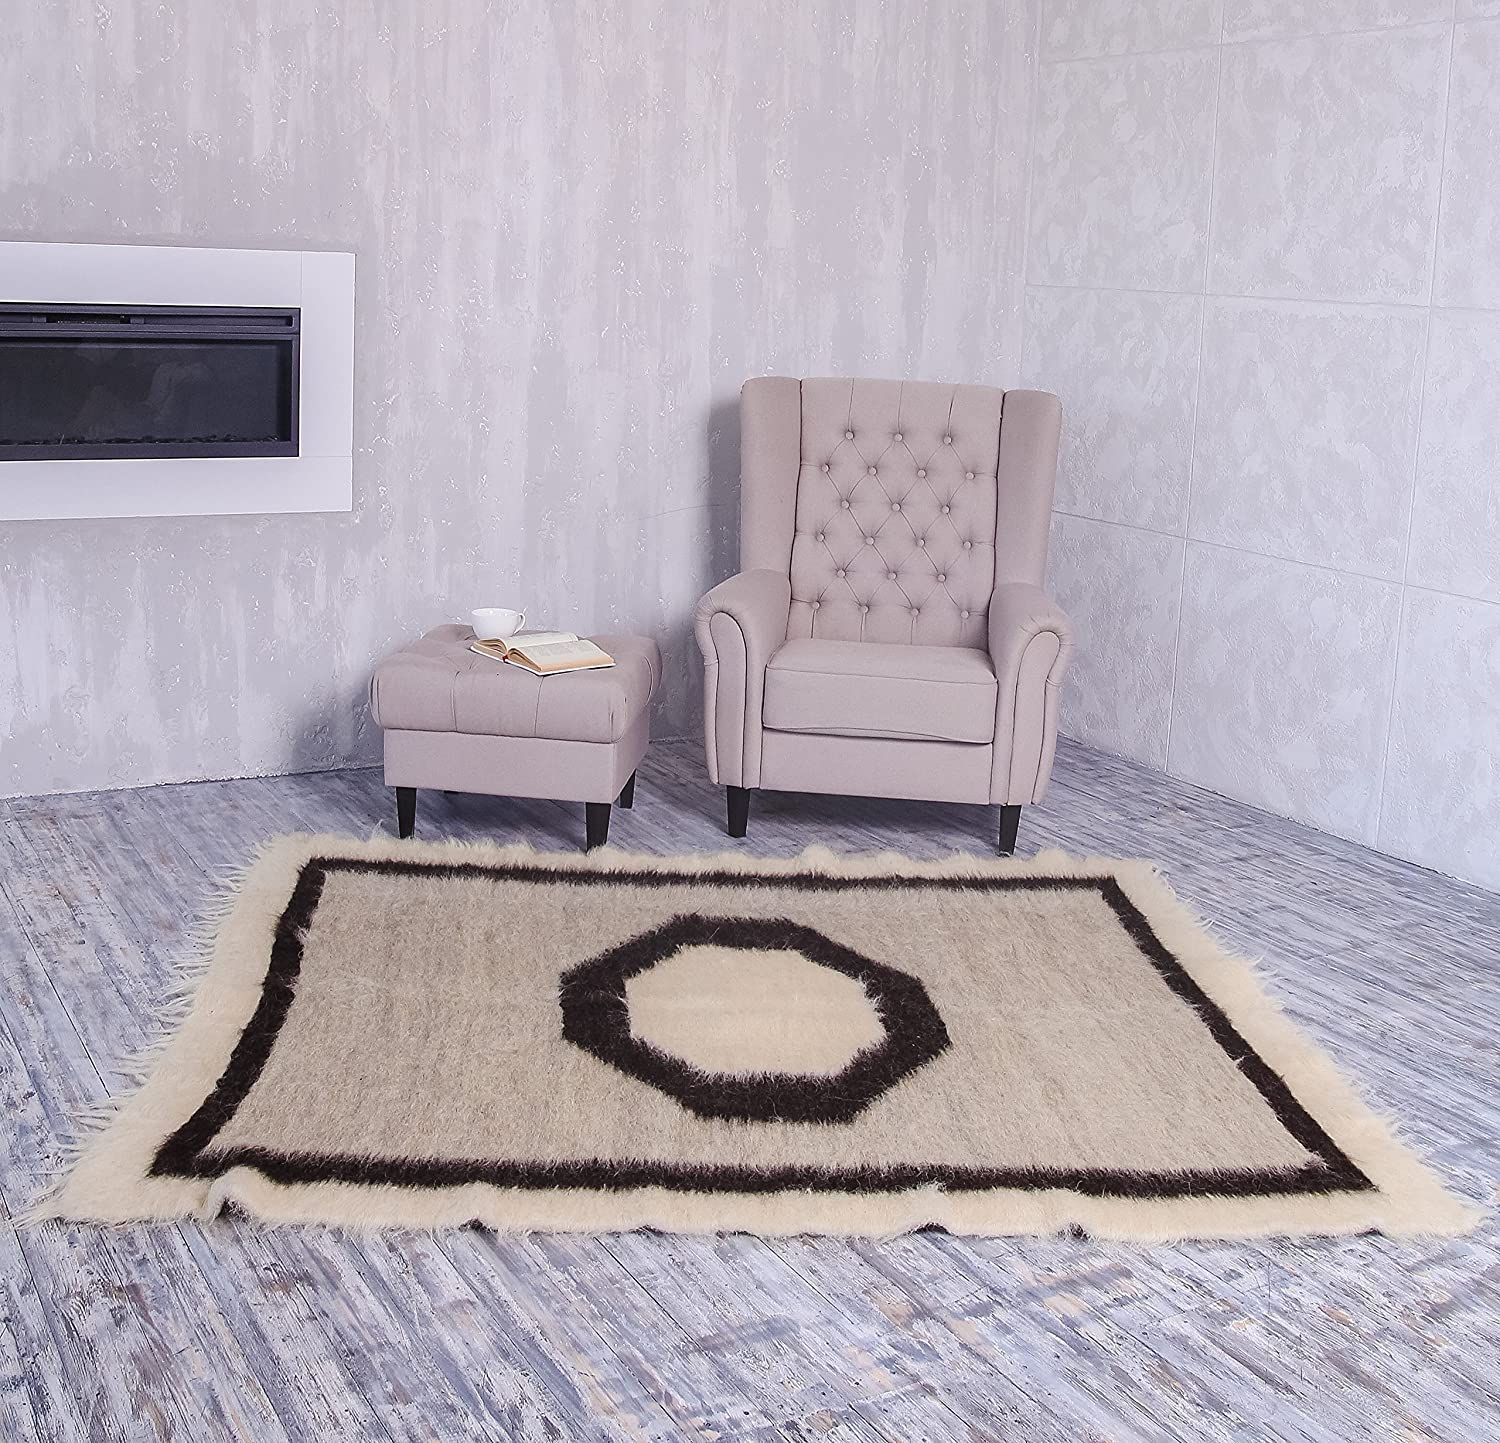 Living Room Centerpiece Rug Light Grey With Geometric Pattern Soft Fluffy Wool Area Rug Scandinavian Home Decor Many Sizes!